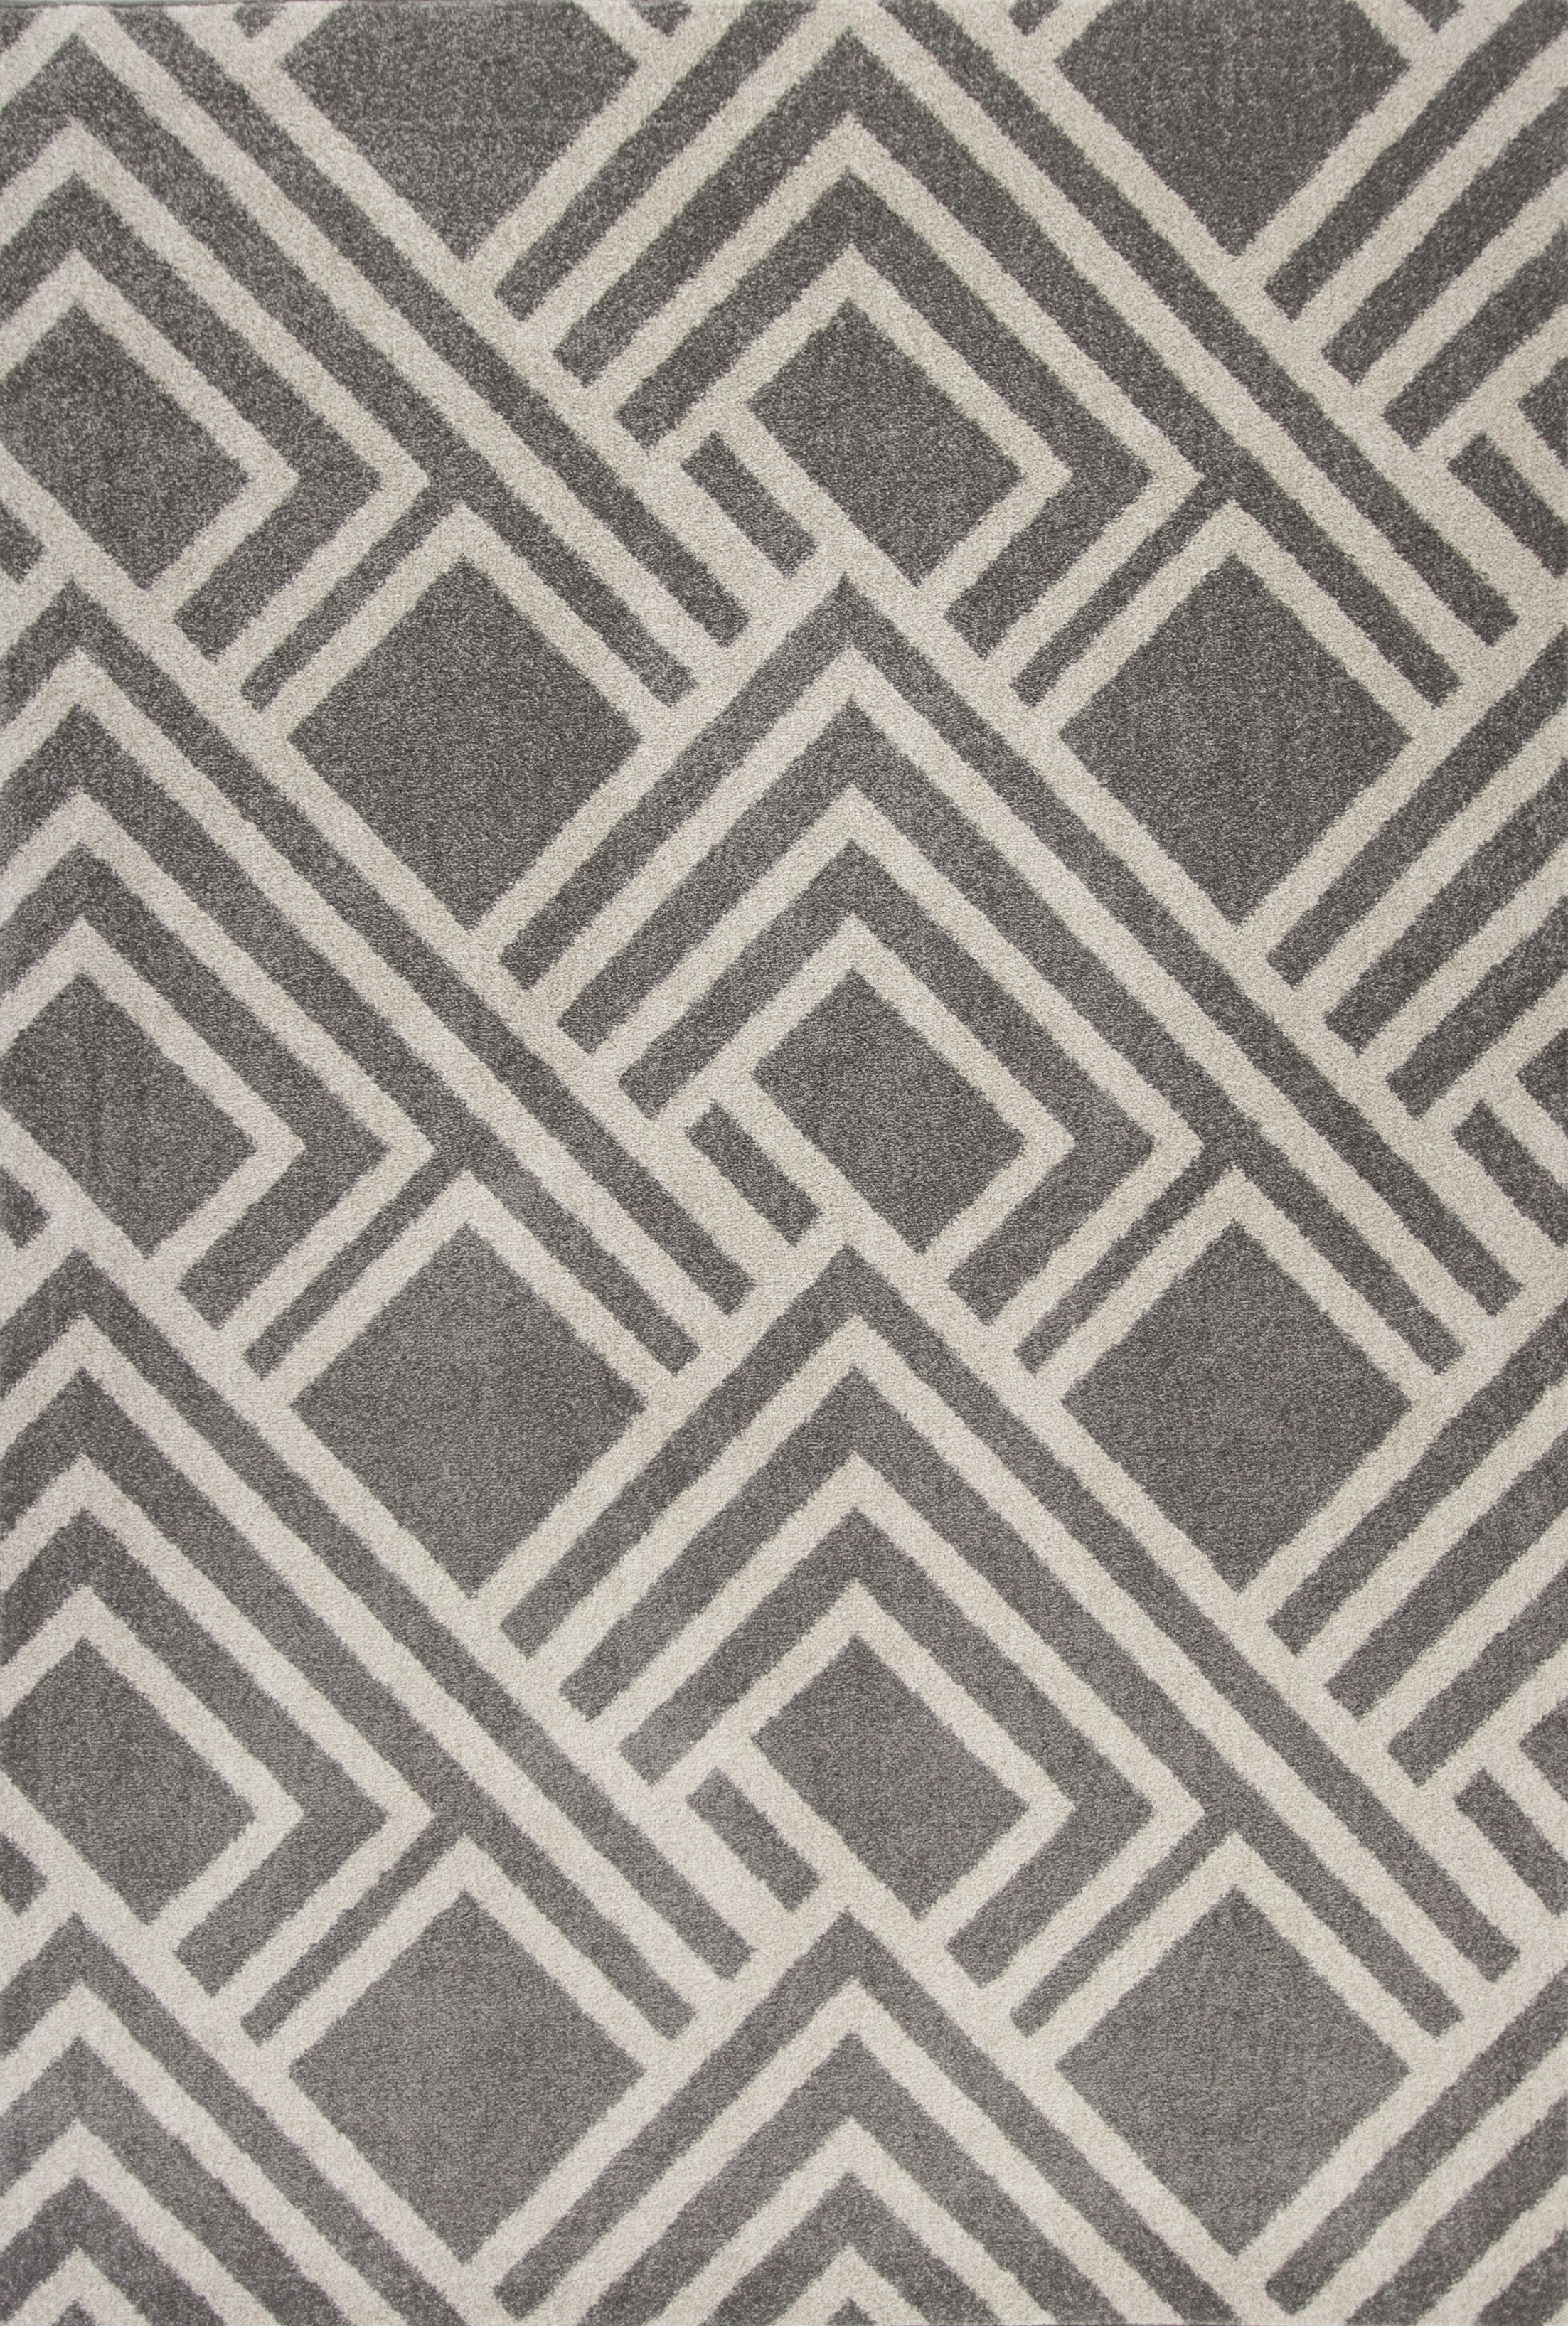 Lowesdale Gray Indoor/Outdoor Area Rug Rug Size: 7'7